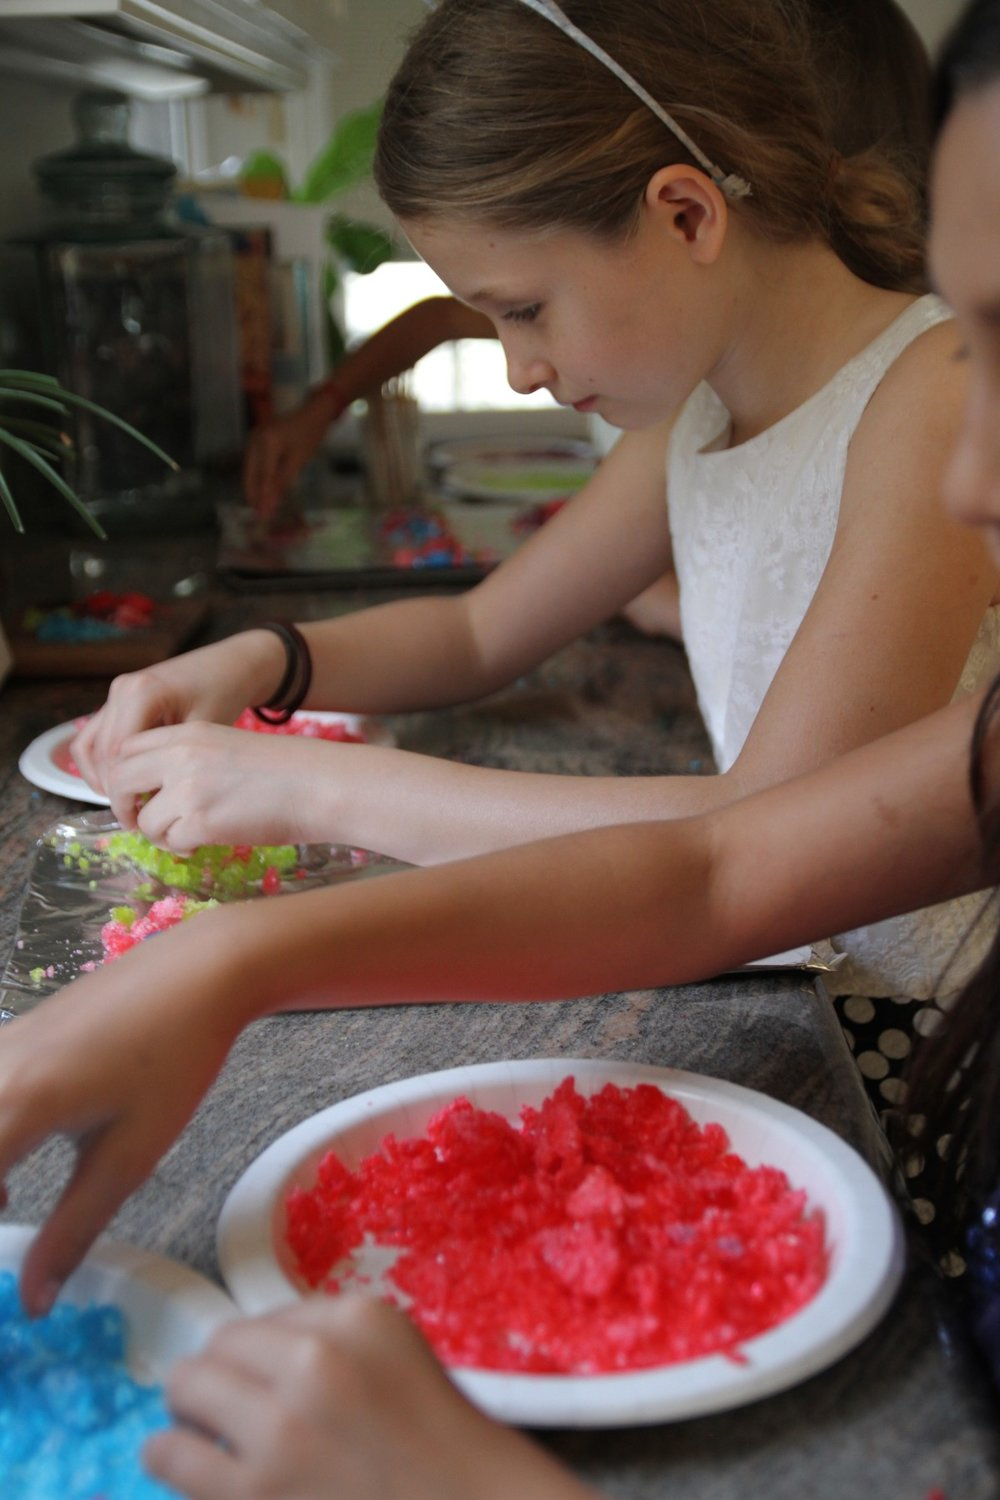 KIDS_MAKING_LOLLIPOPS-e1459196904721.jpg